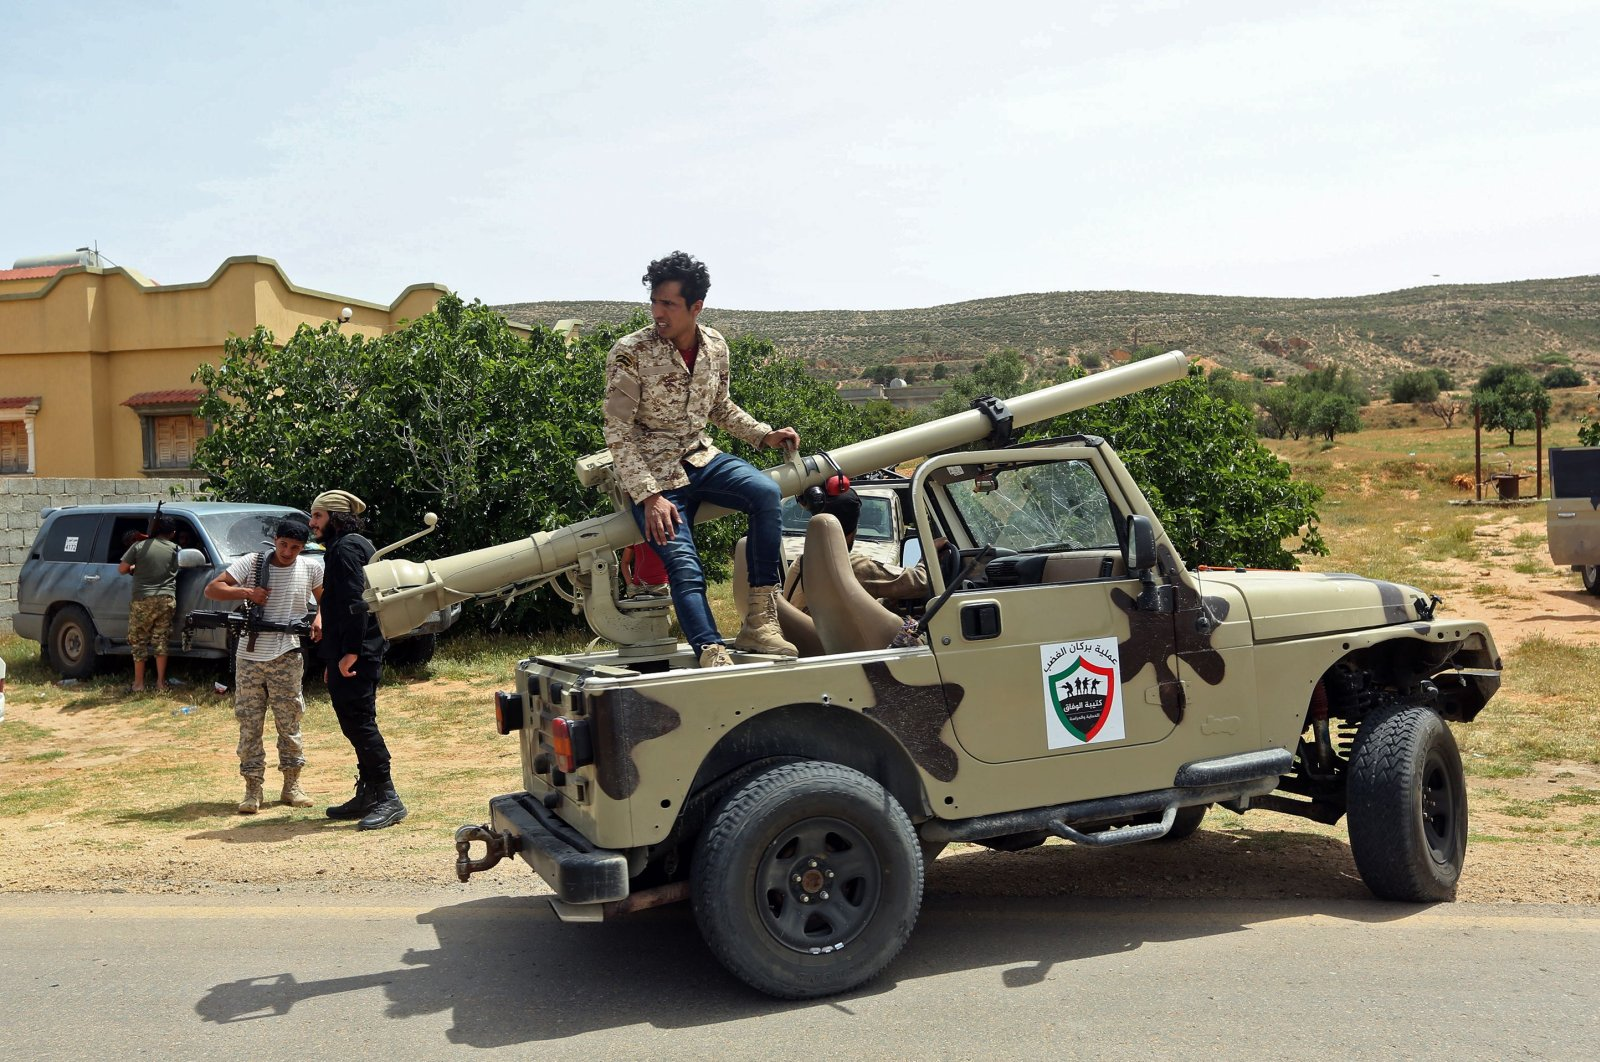 Fighters with Libya's UN-recognised Government of National Accord (GNA) gather at a position near the town of Garabulli, some 70 kms east of the capital Tripoli on April 19, 2020. (AFP)